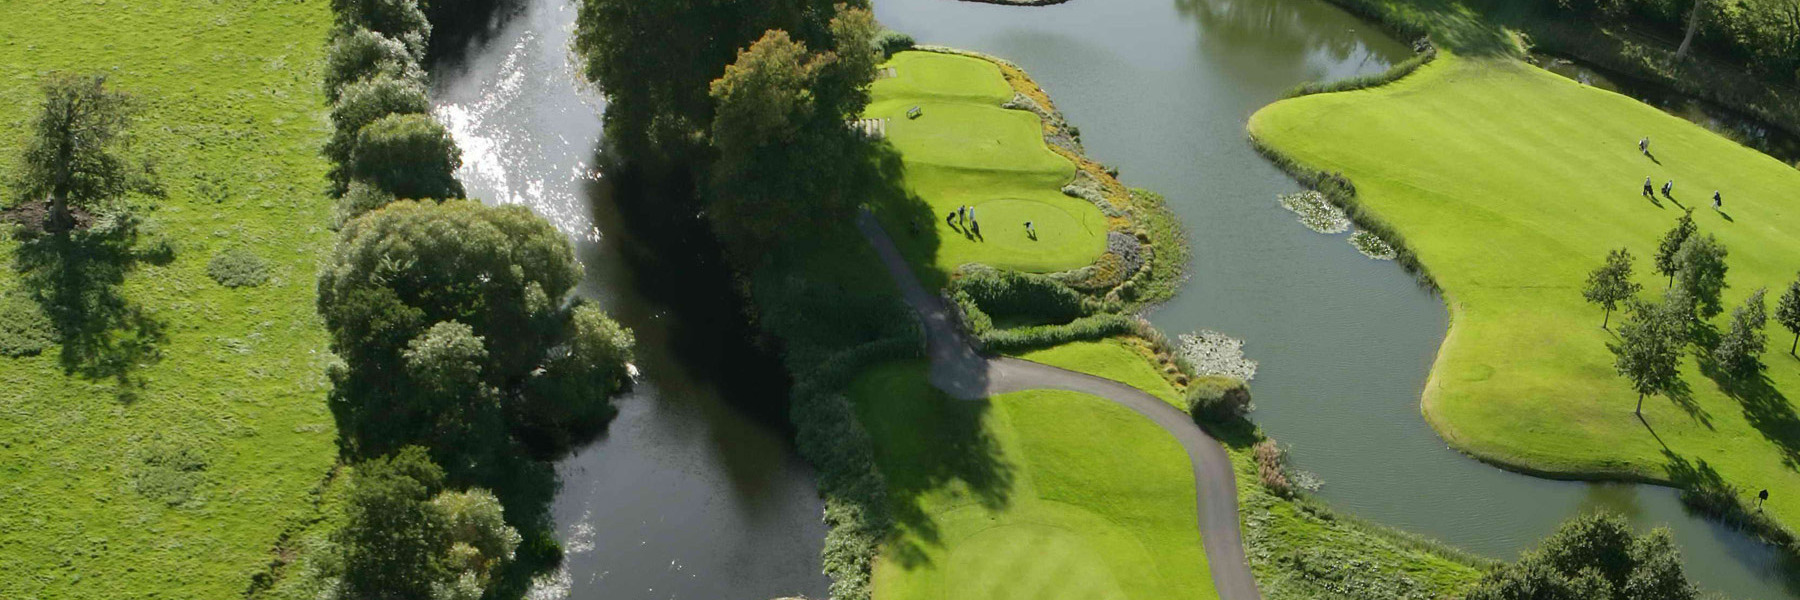 Golf Vacation Package - Dublin Ireland - 6 Nights and 5 Rounds at The K Club with rental car for $2795